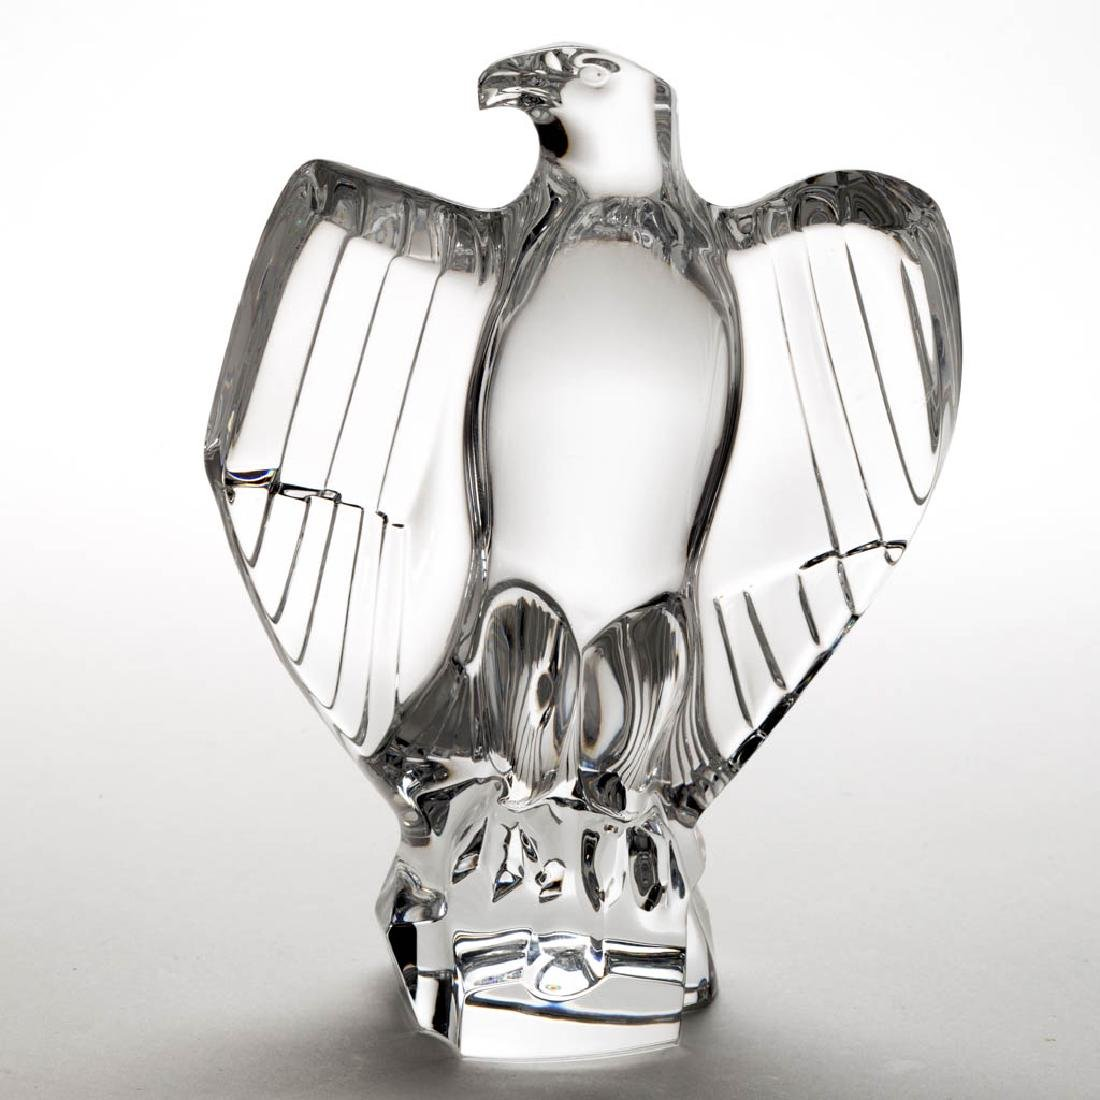 BACCARAT EAGLE CRYSTAL ART GLASS FIGURINE / PAPERWEIGHT